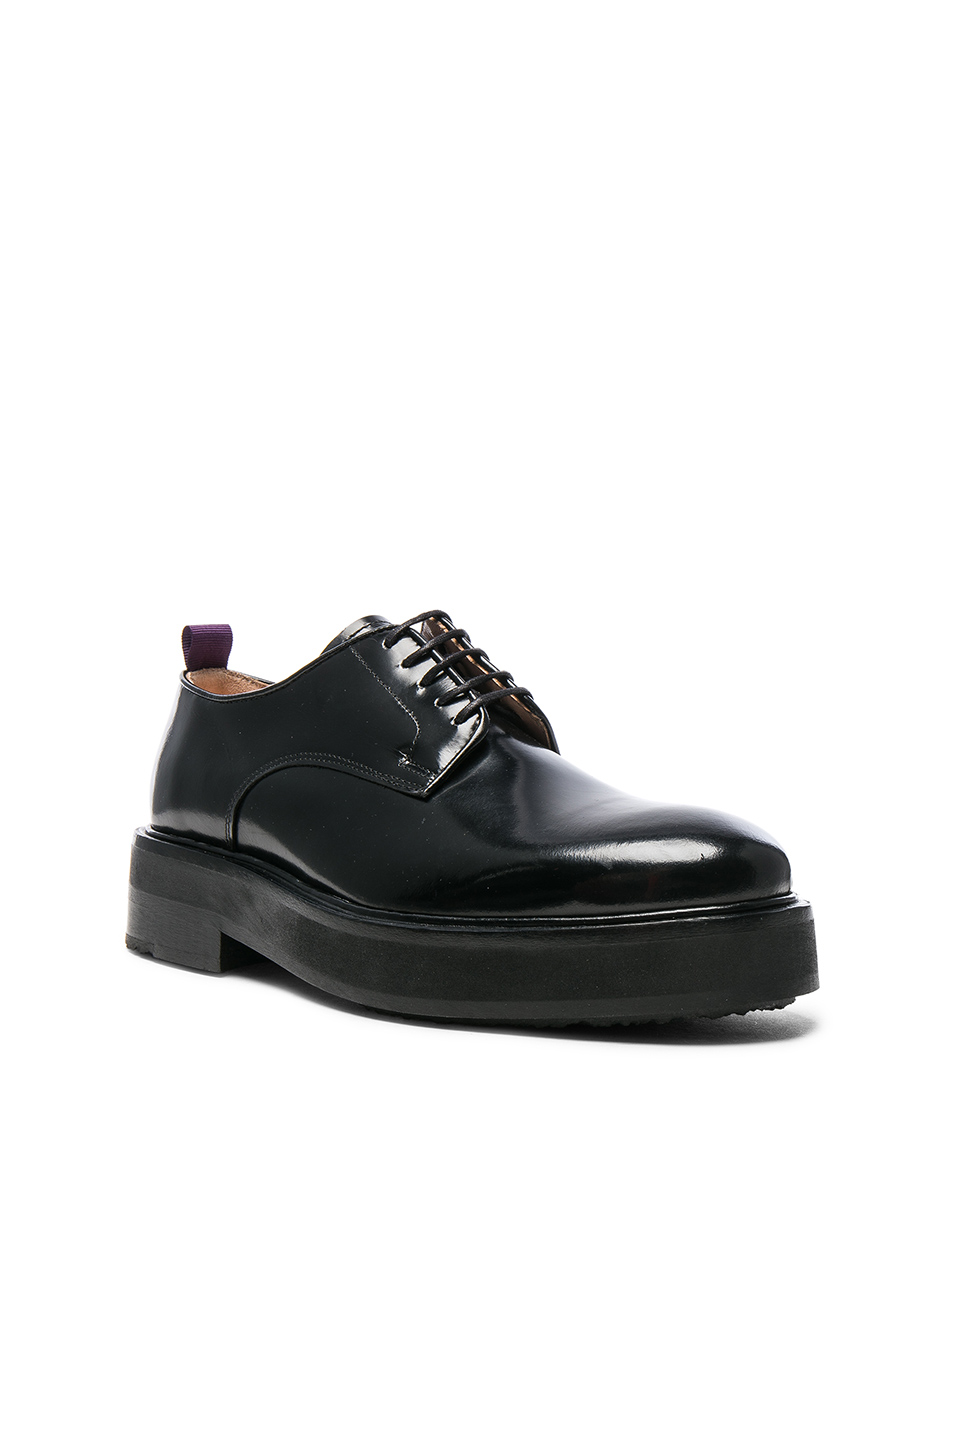 Eytys Leather Kingston Dress Shoes in Black